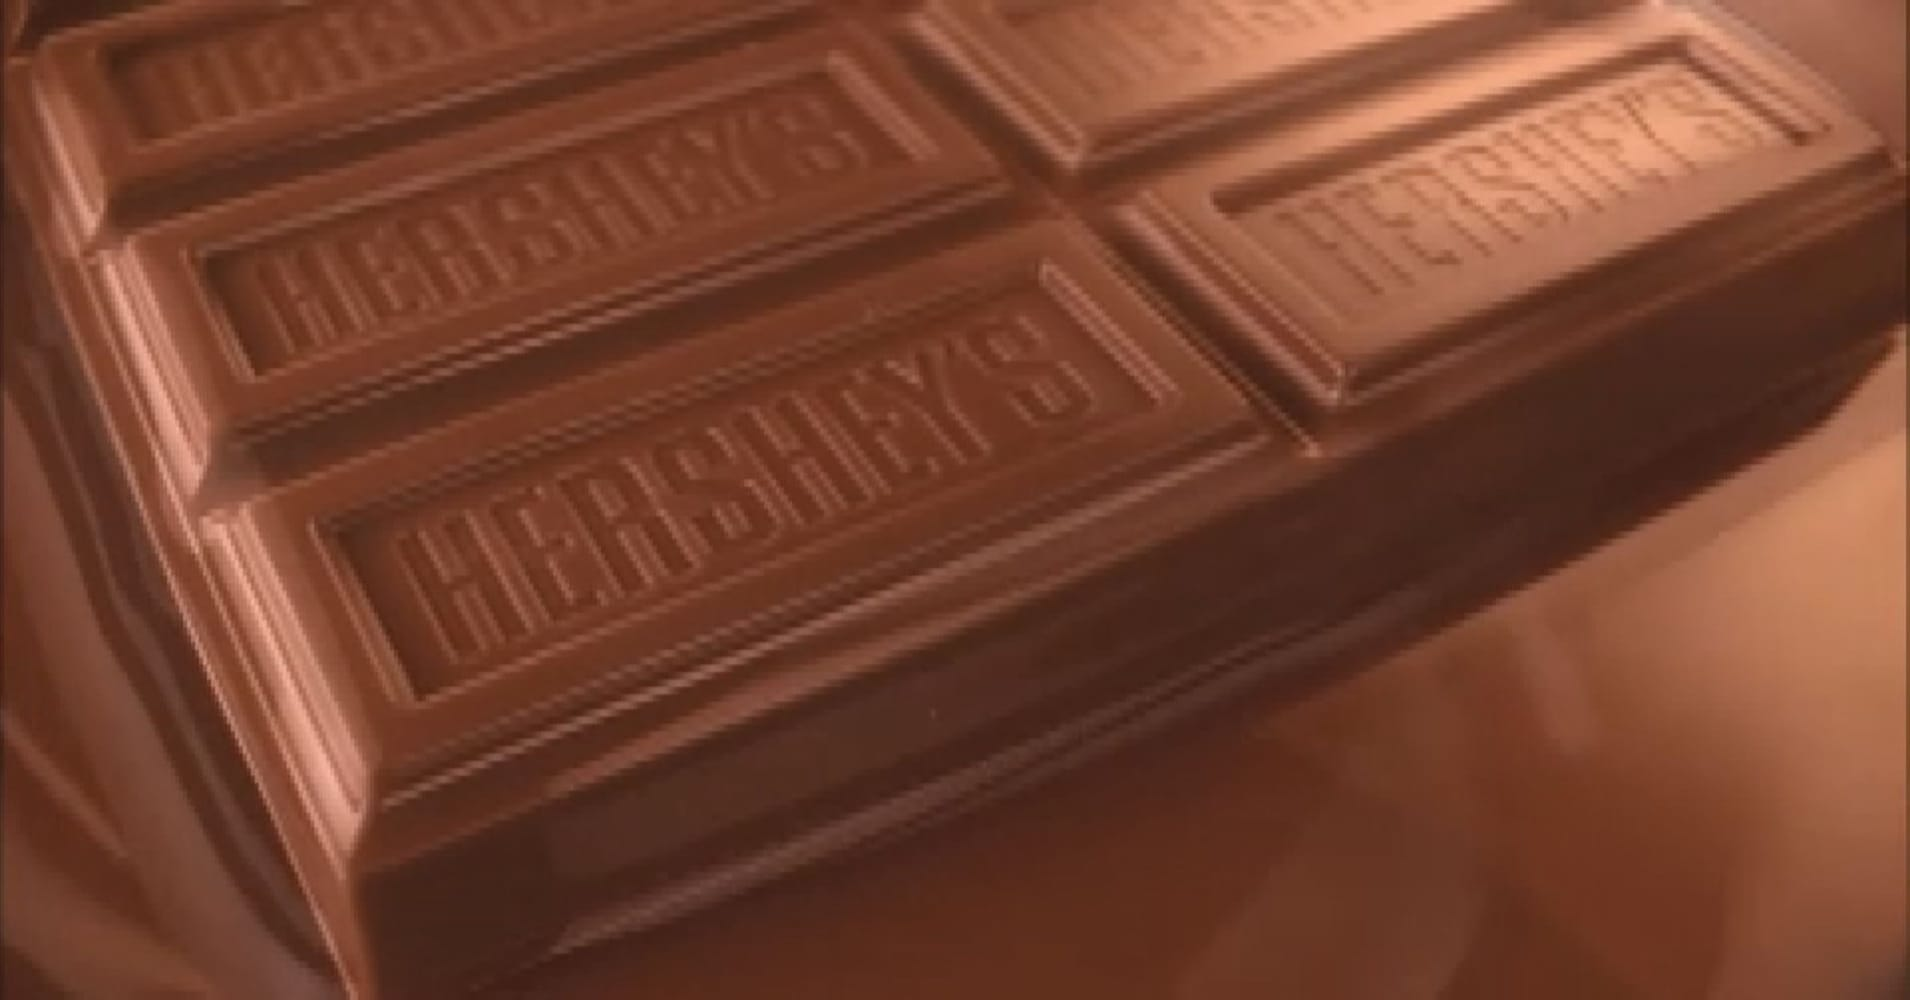 hershey ceo snacking growth is outpacing center of the store growth